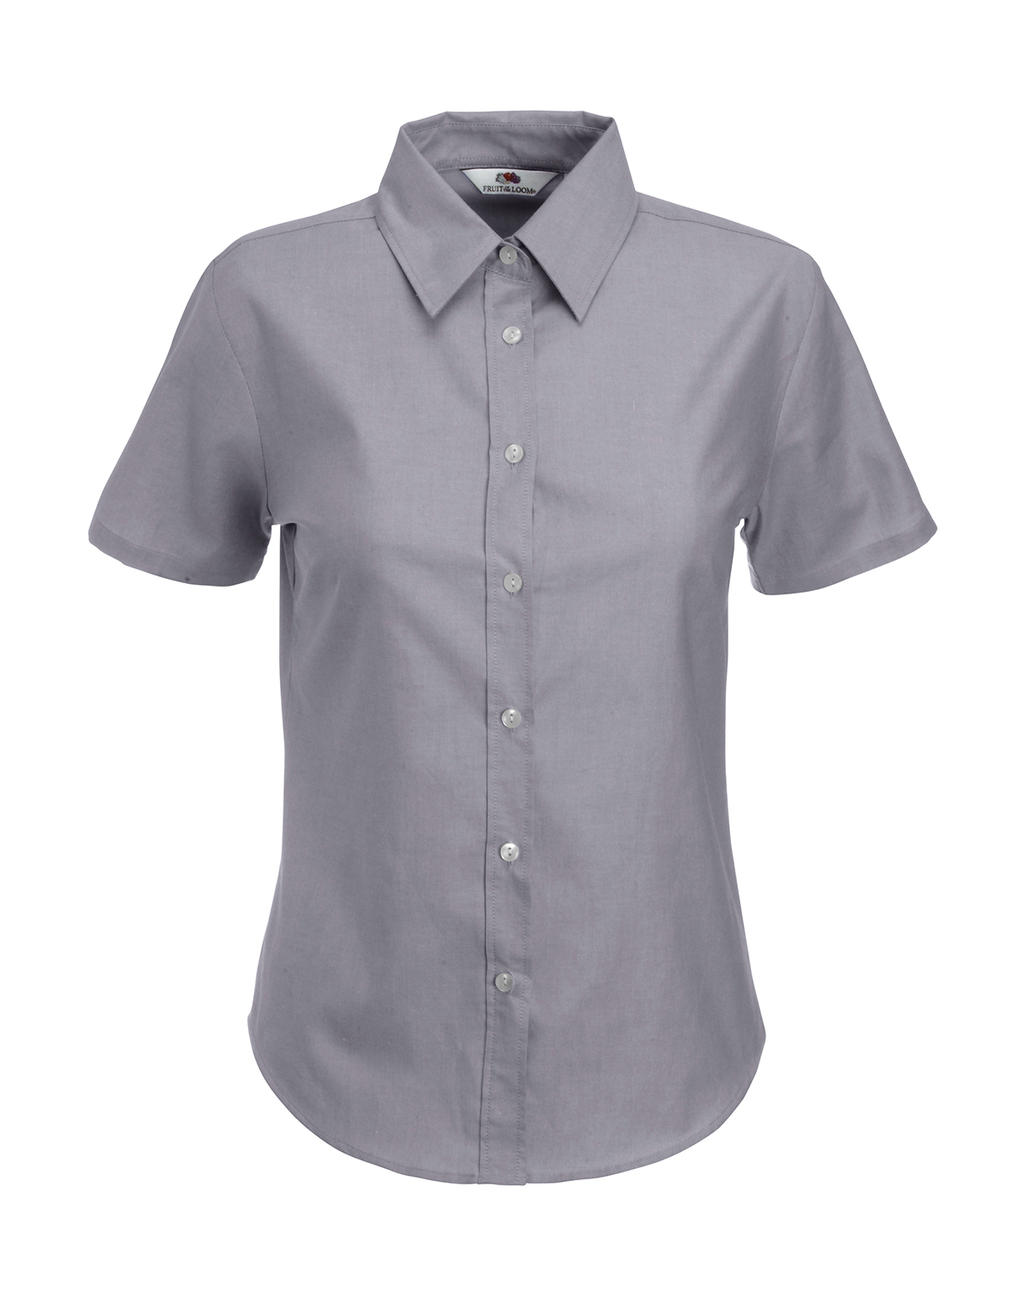 Fruit of the Loom Ladies Oxford Shirt SS